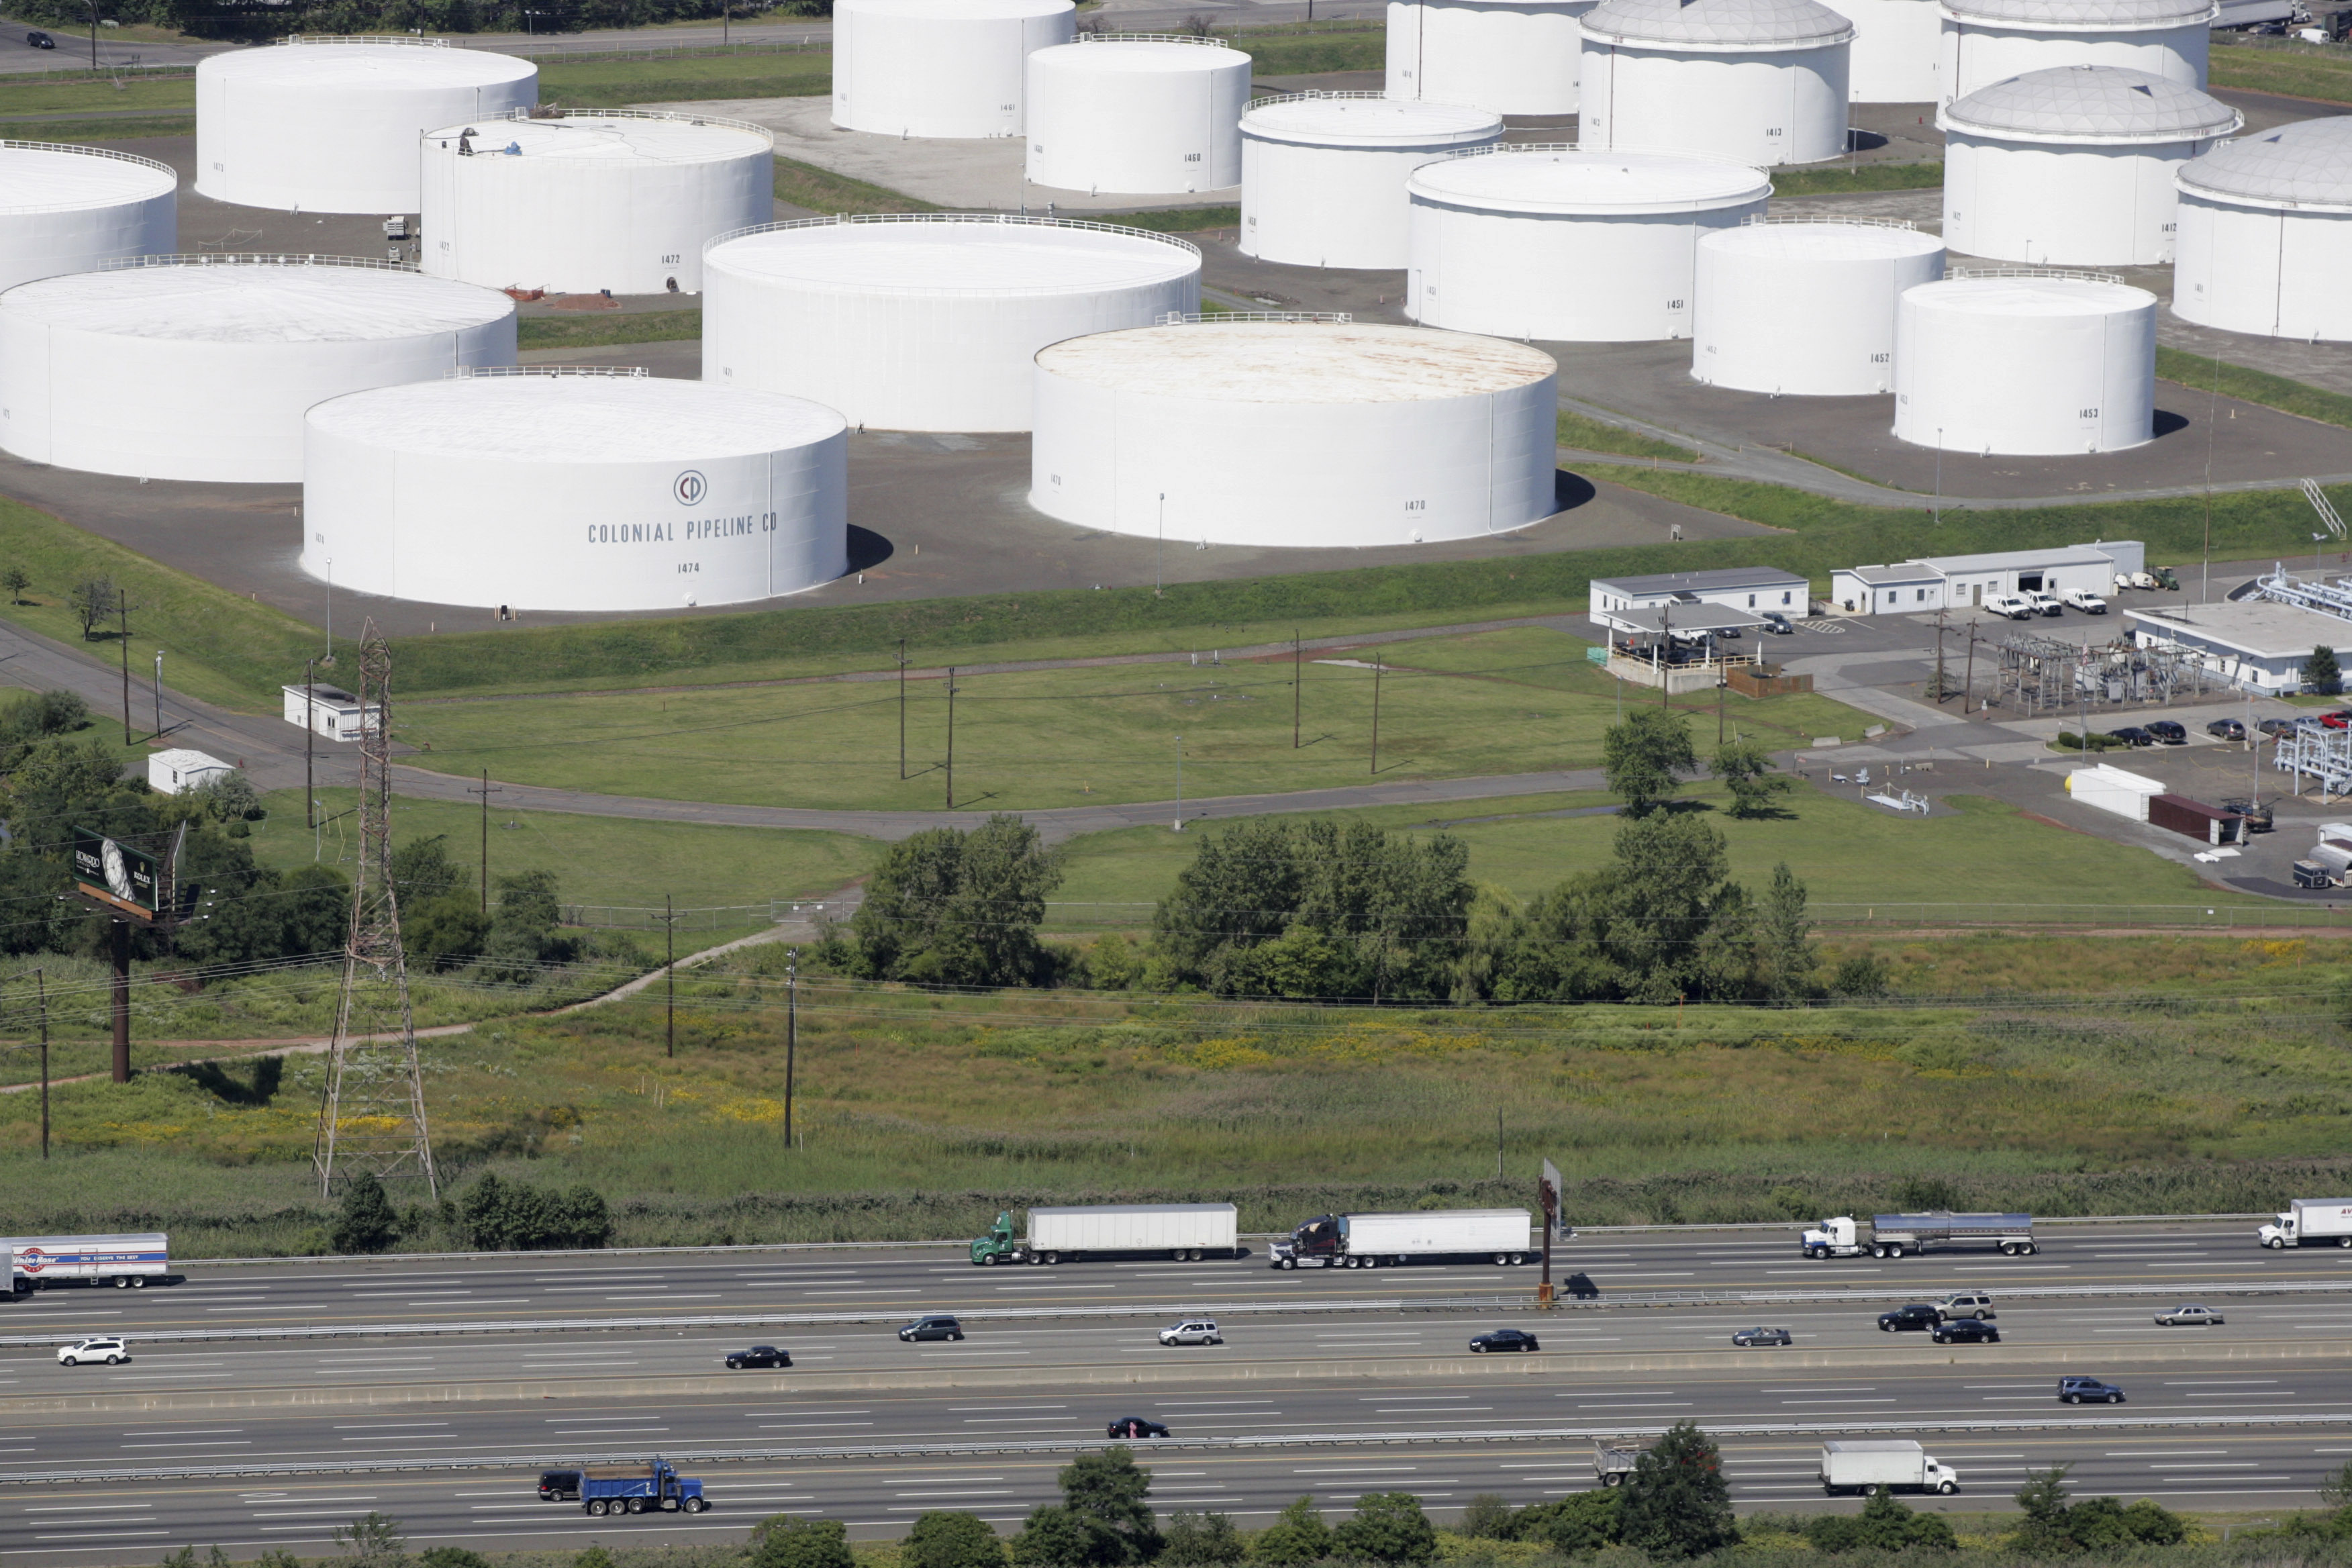 In this Sept. 8, 2008 file photo traffic on I-95 passes oil storage tanks owned by the Colonial Pipeline Company in Linden, N.J. A major pipeline that transports fuels along the East Coast says it had to stop operations because it was the victim of a cyberattack.